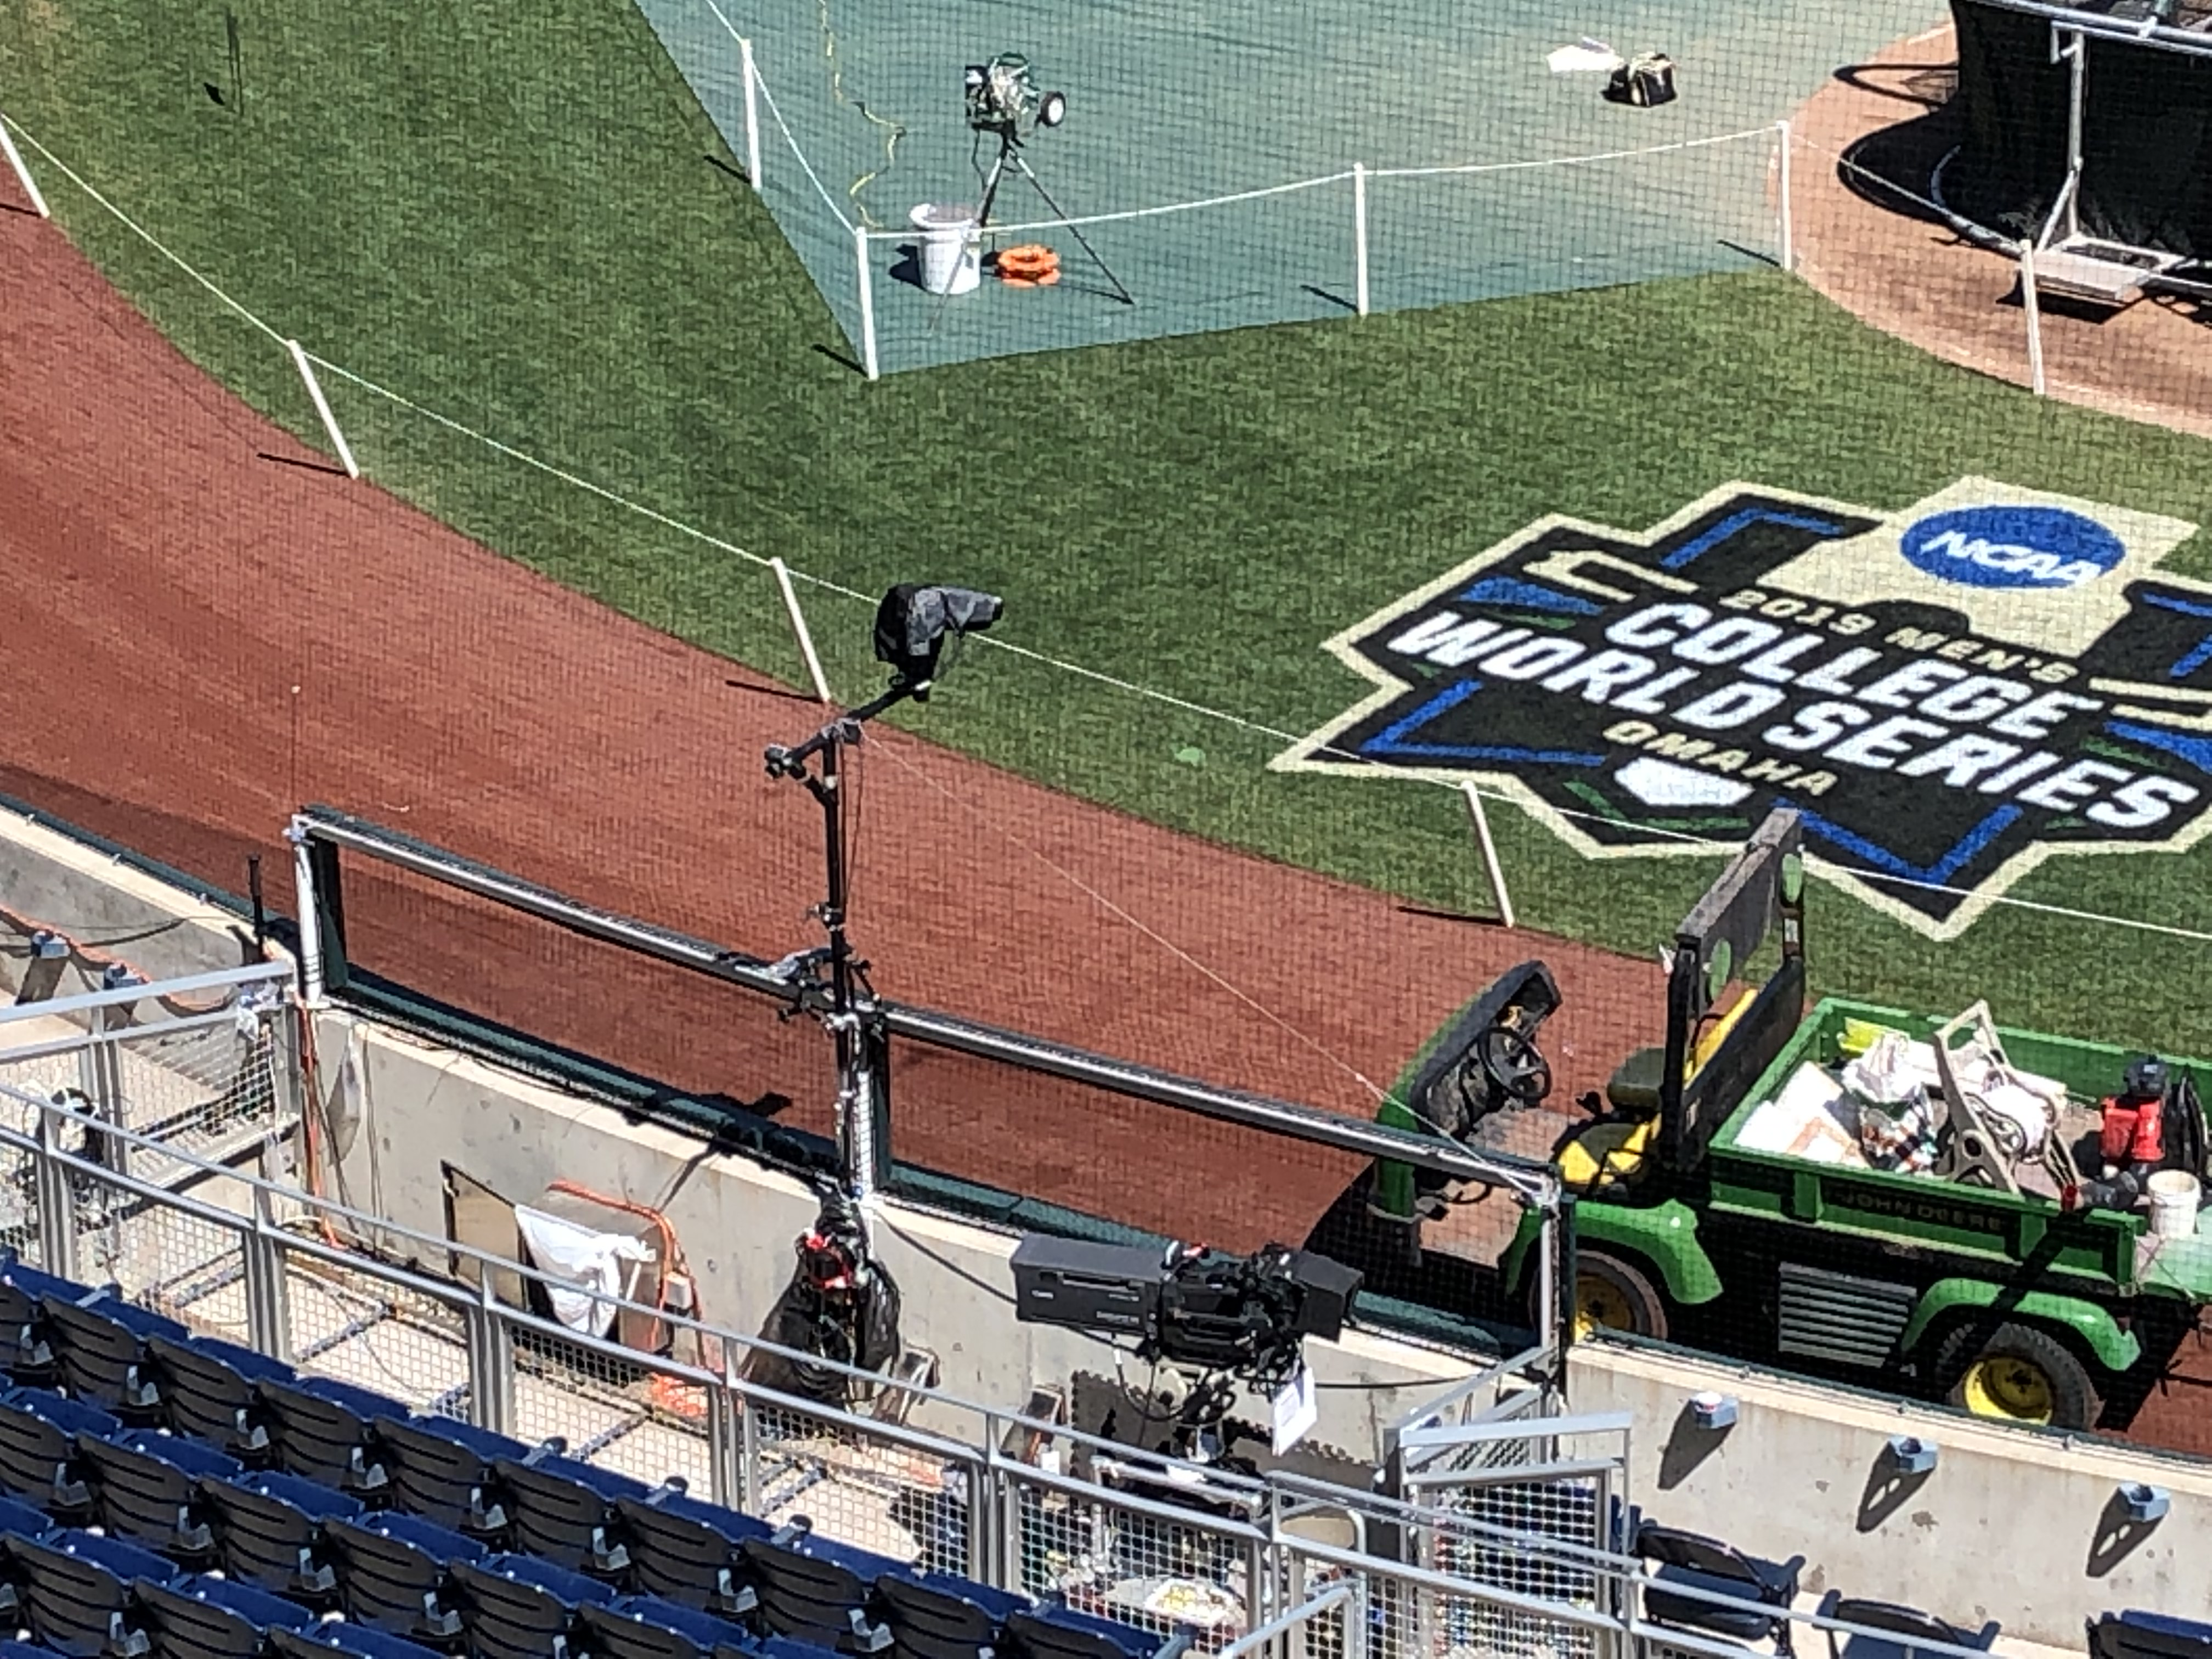 Live From the College World Series: ESPN Deploys MLB-Level